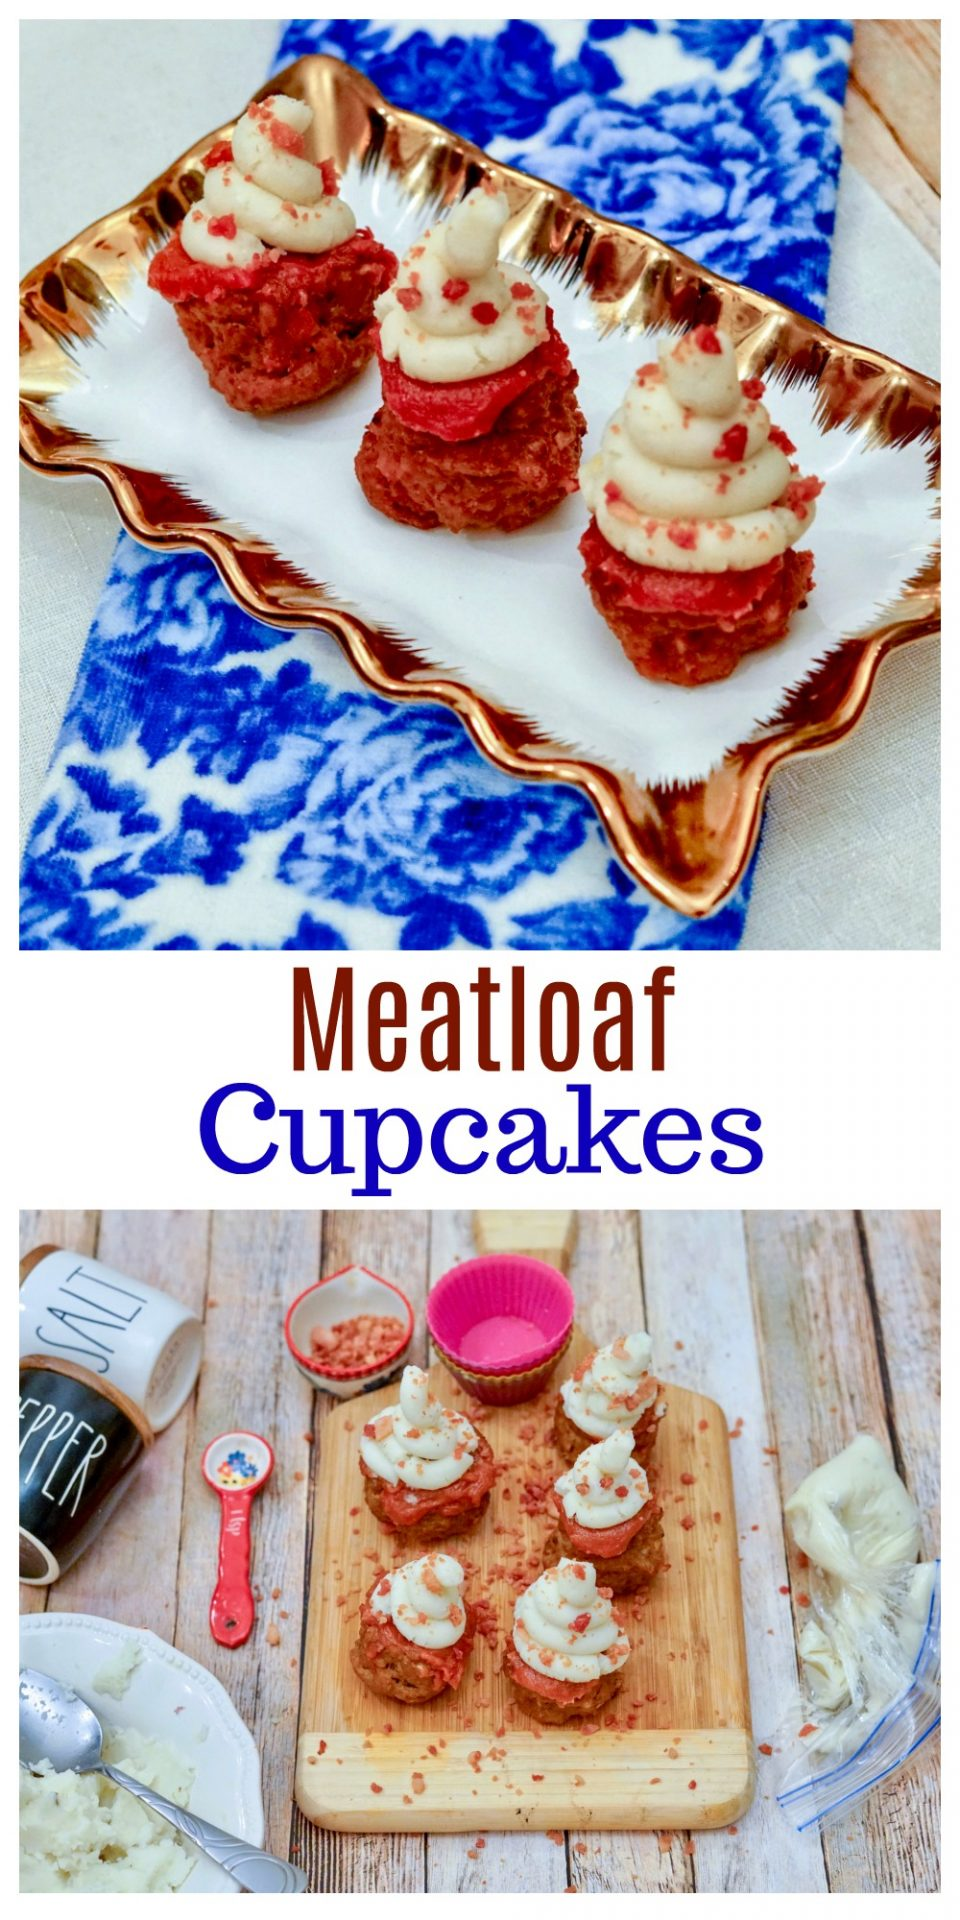 Have you ever made Meatloaf Cupcakes? They are a fun twist on a classic meal. This easy recipe will surely be a family favorite for many years to come.